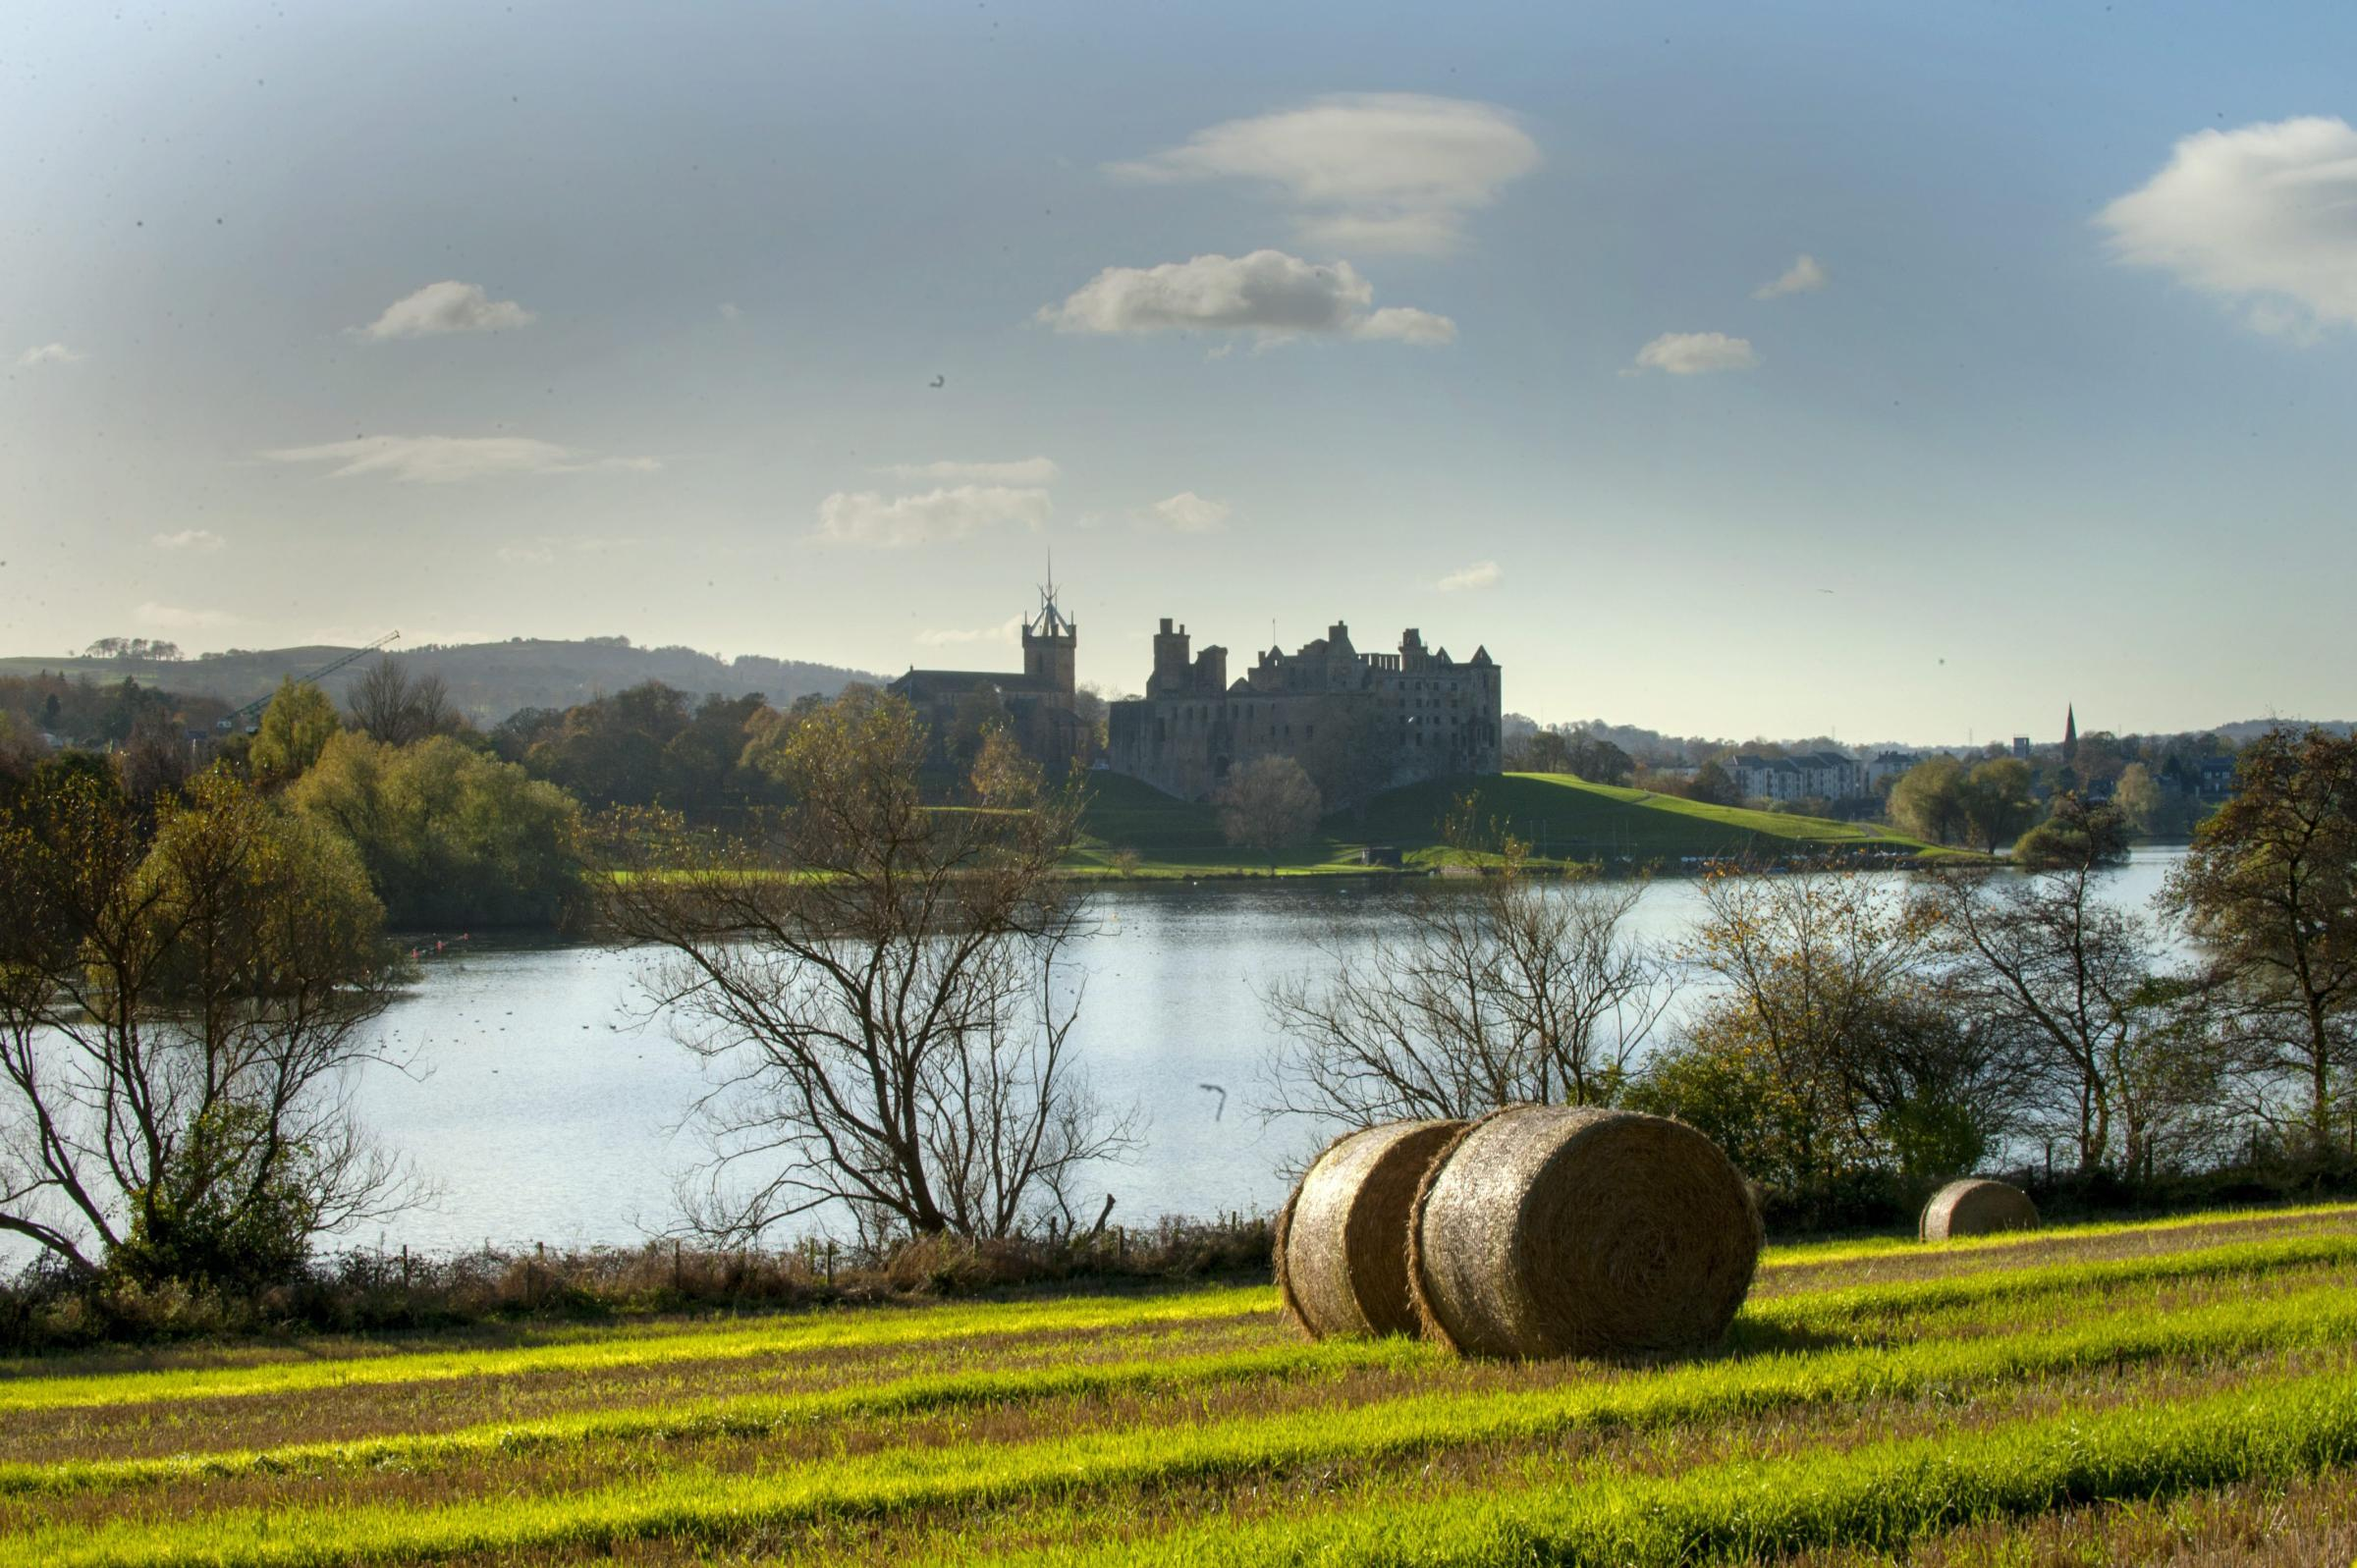 Linlithgow Palace was once a principal residence of Scotland's monarchs